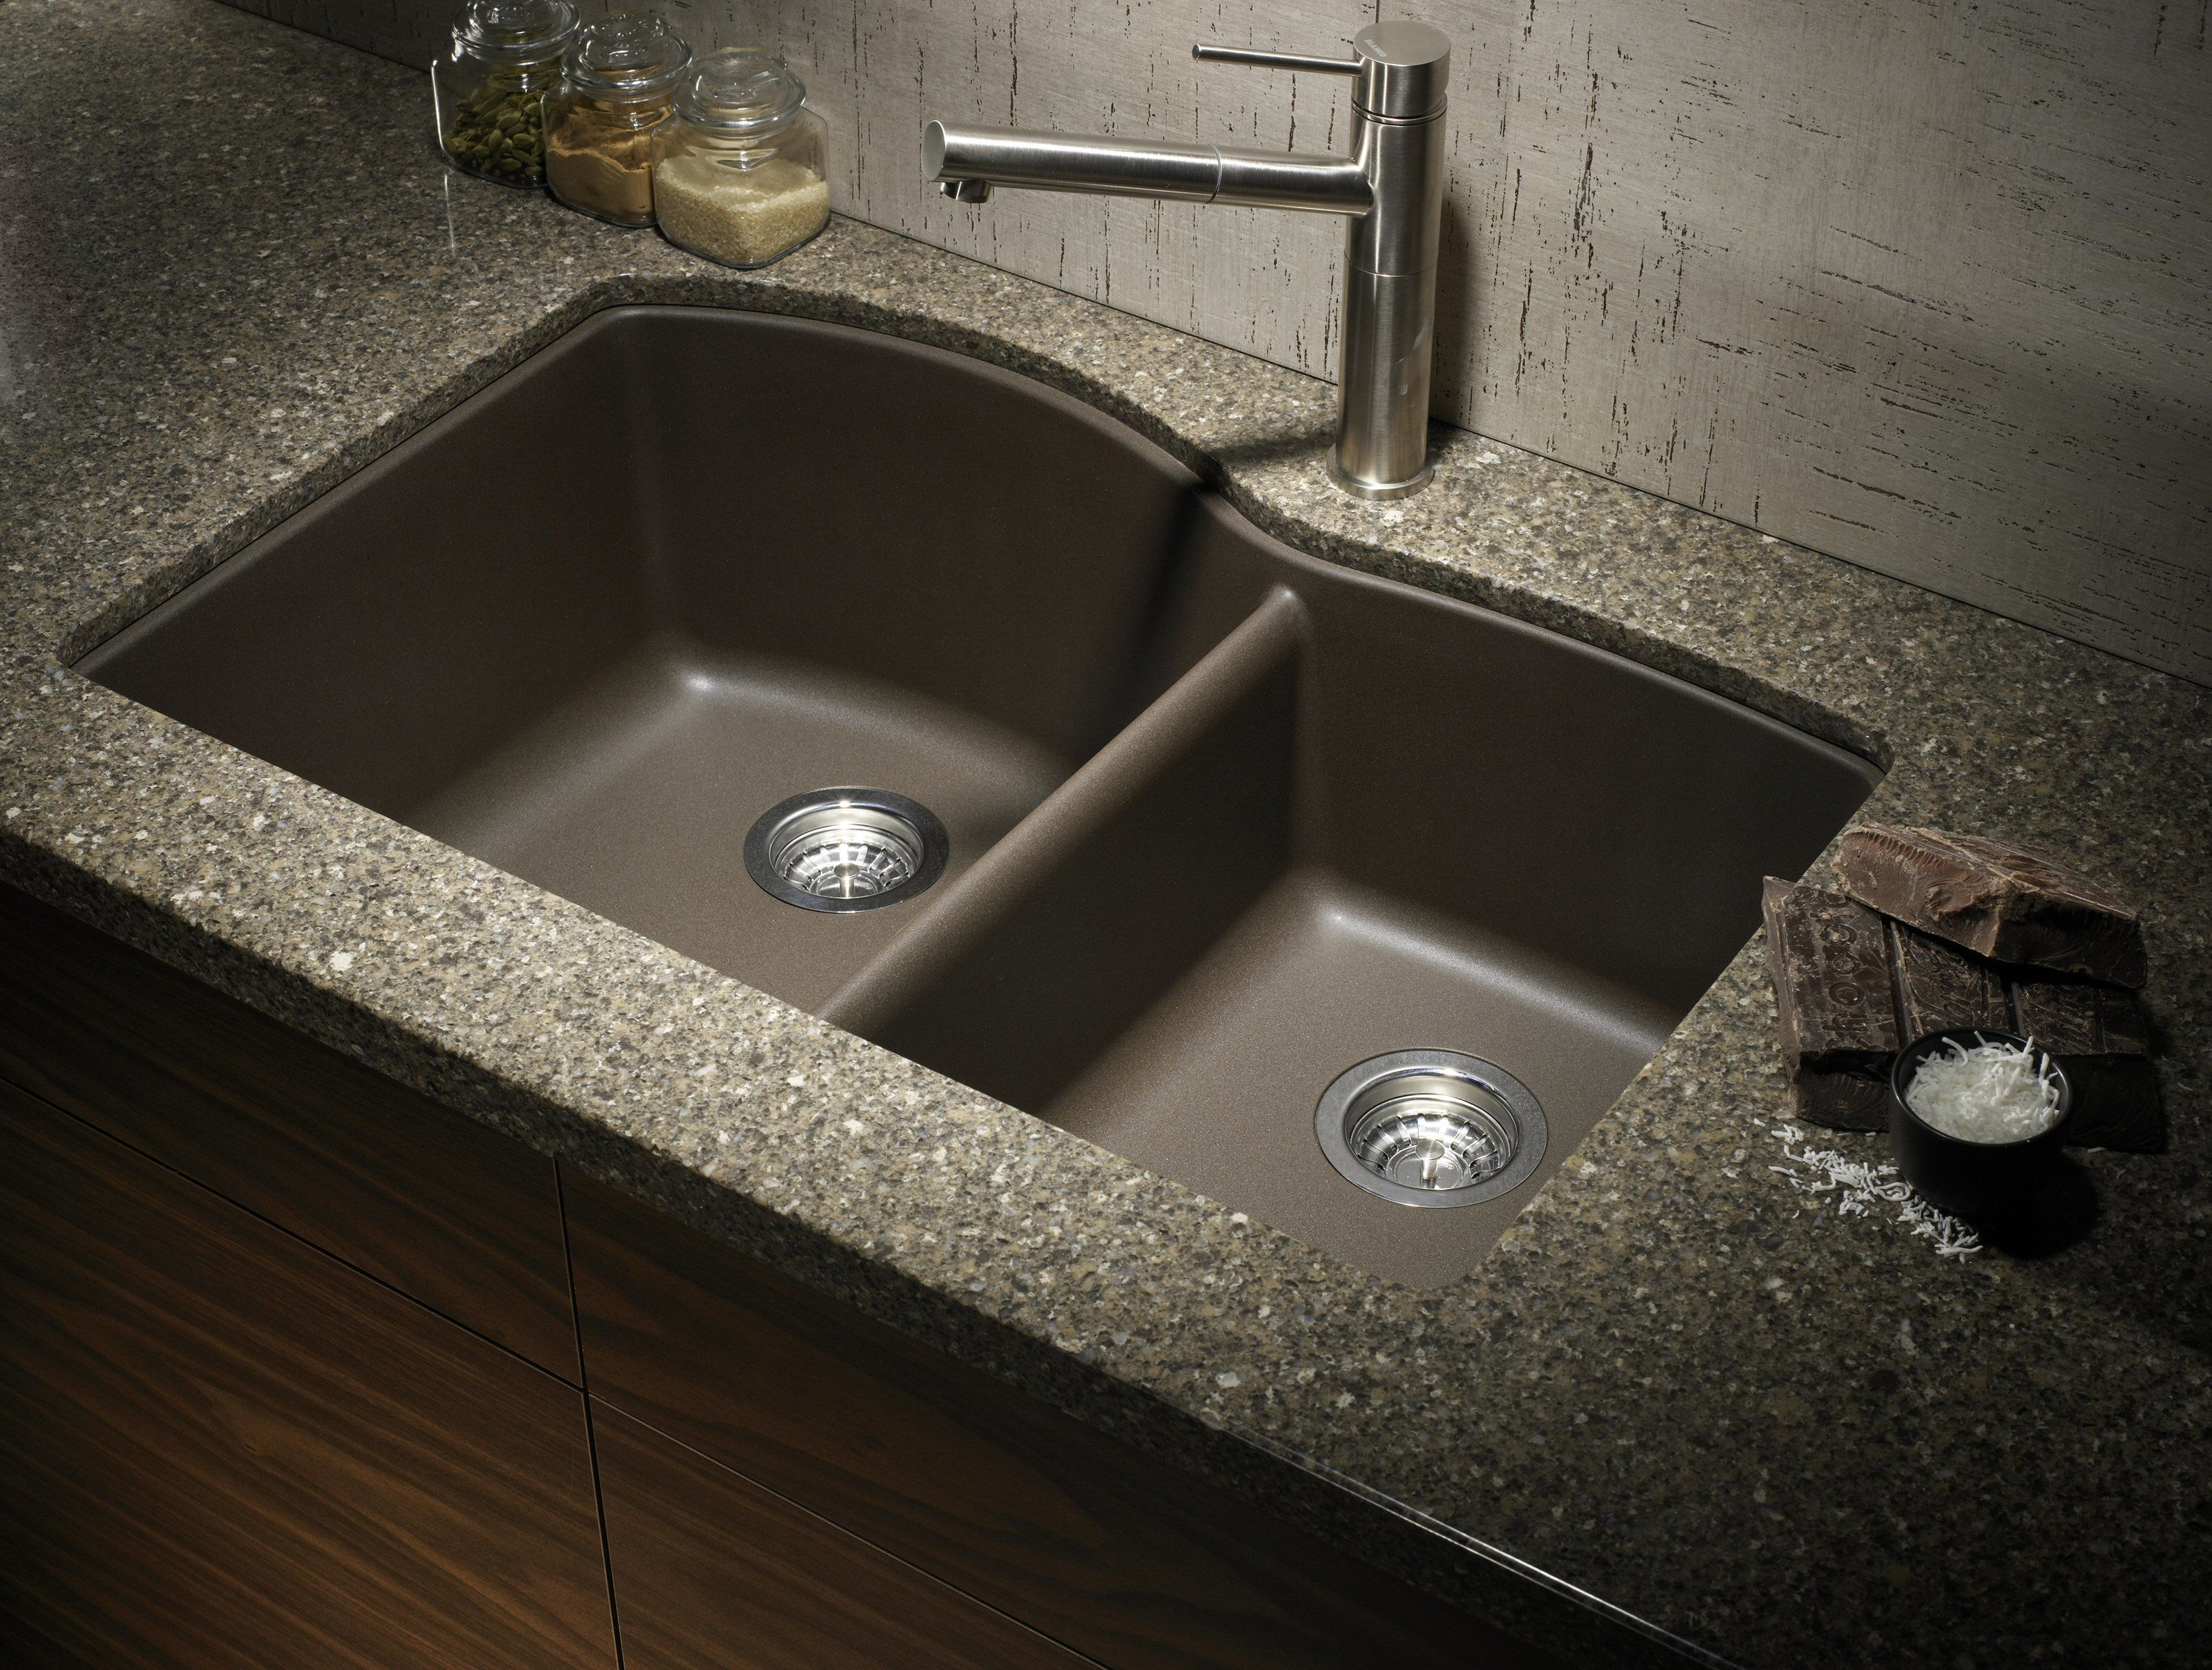 Kitchen Double Sinks Blanco 440177 cafe brown diamond 32 double basin undermount blanco 440177 cafe brown diamond 32 double basin undermount silgranit ii kitchen sink with 6040 split faucet workwithnaturefo